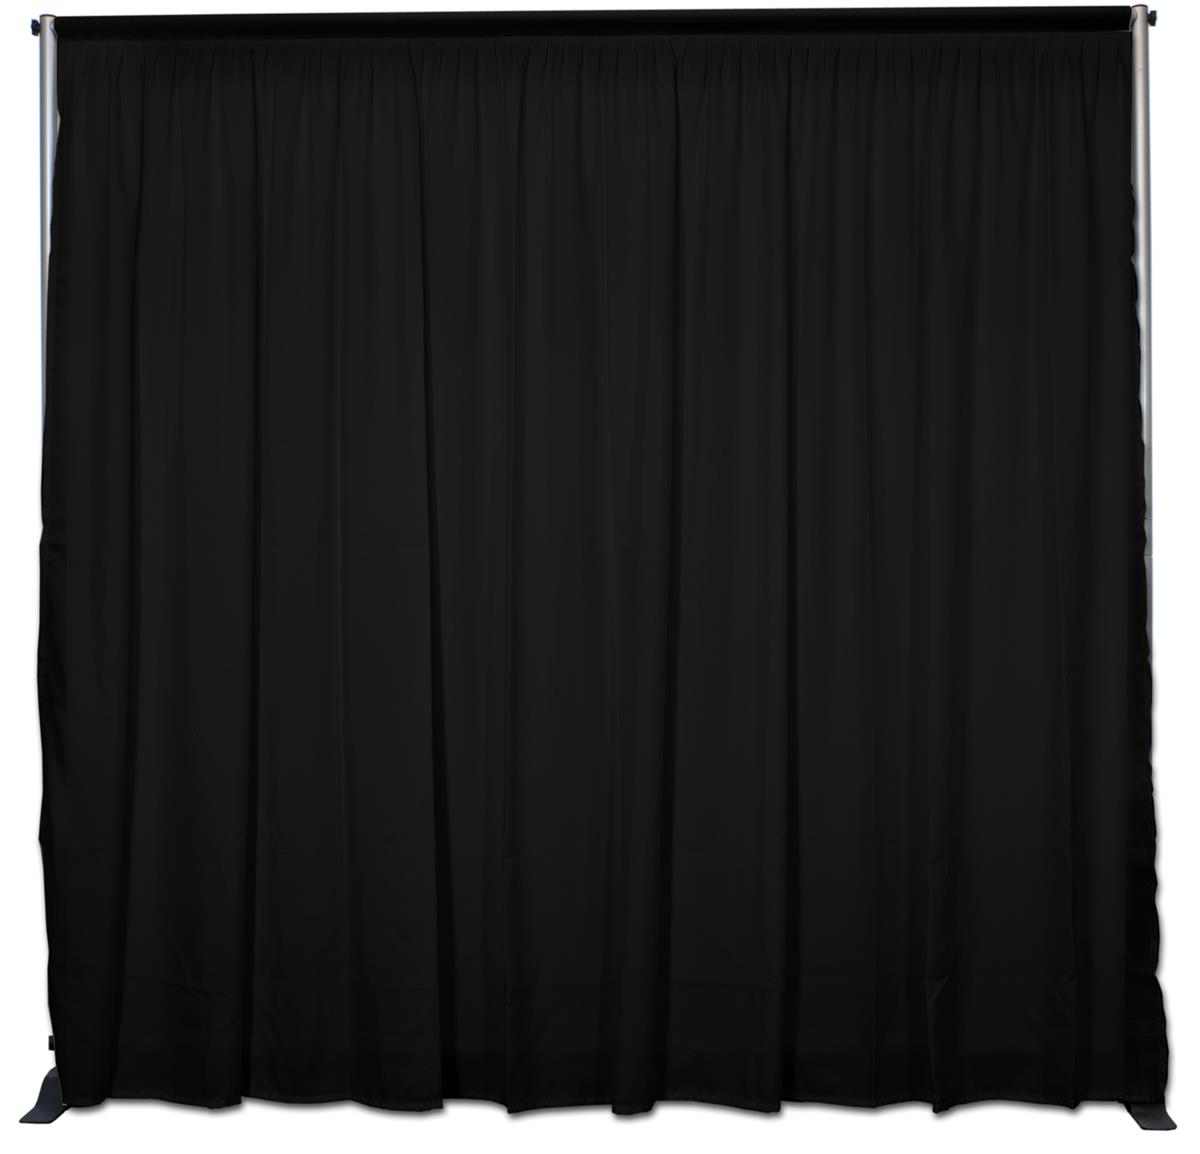 inc show pipe booths allcargos tradeshow burgundy trade mississauga white event toronto tent drape scarborough ajax markham rentals product supplies and drapes brampton rental oakville